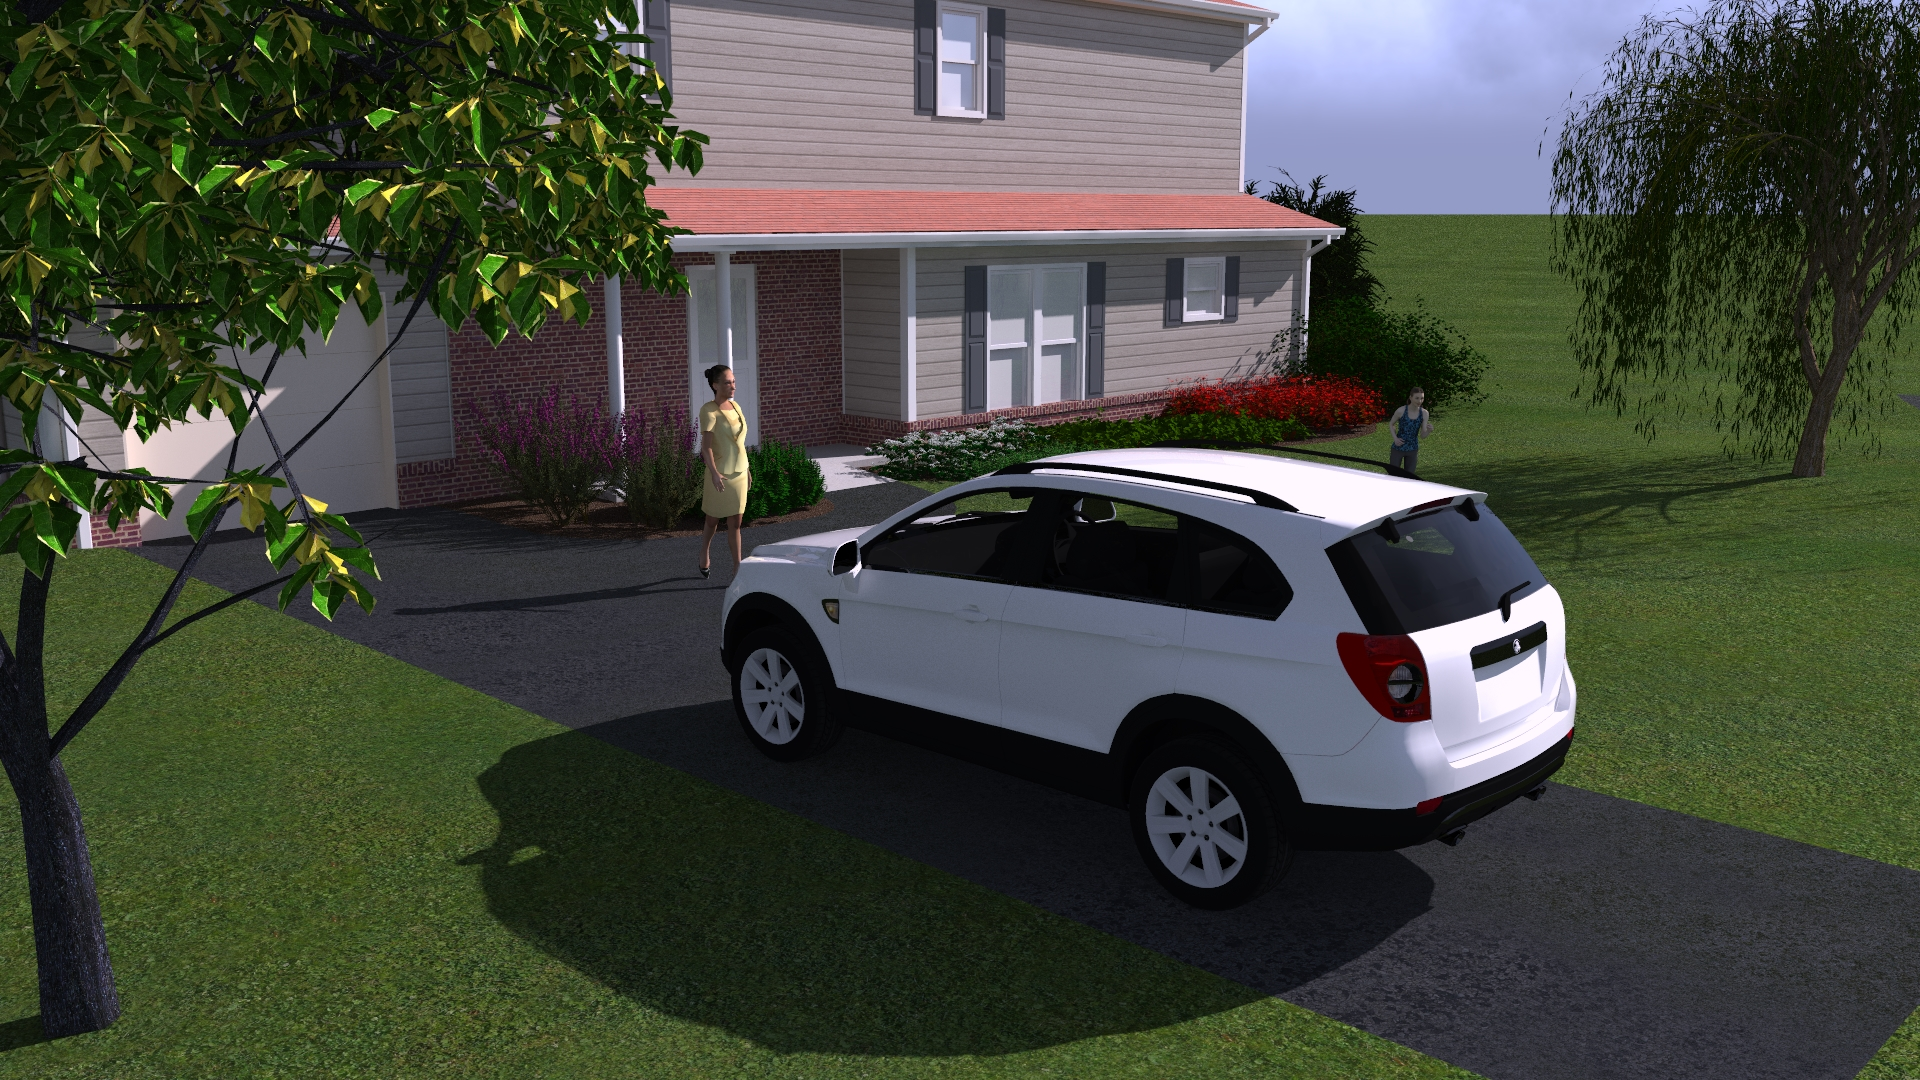 3D Rendering of an Addition and Renovation Design of a Home on Ridgemont Place